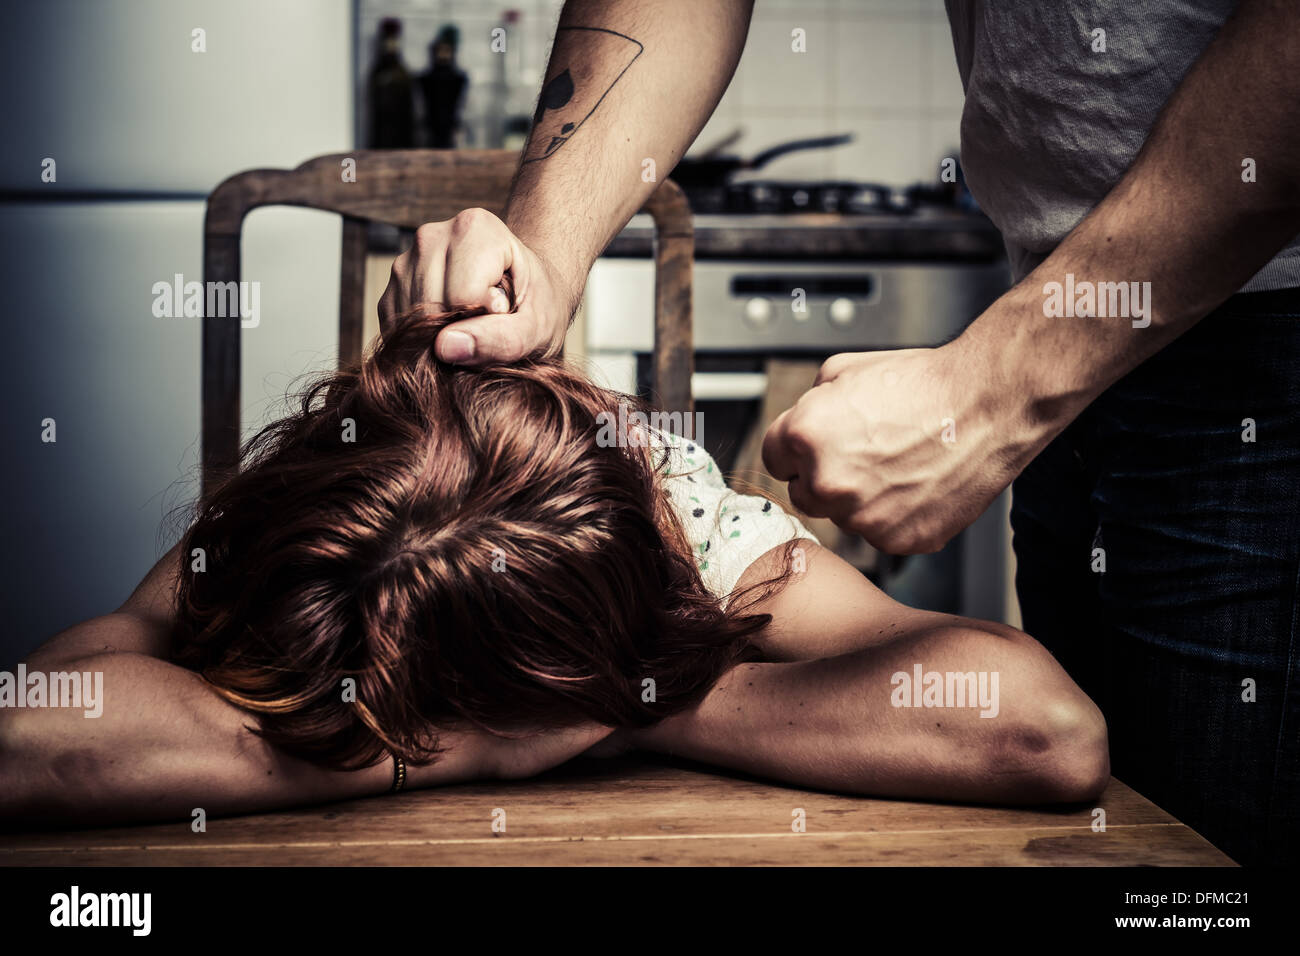 Man pulling his wife's hair in kitchen - Stock Image